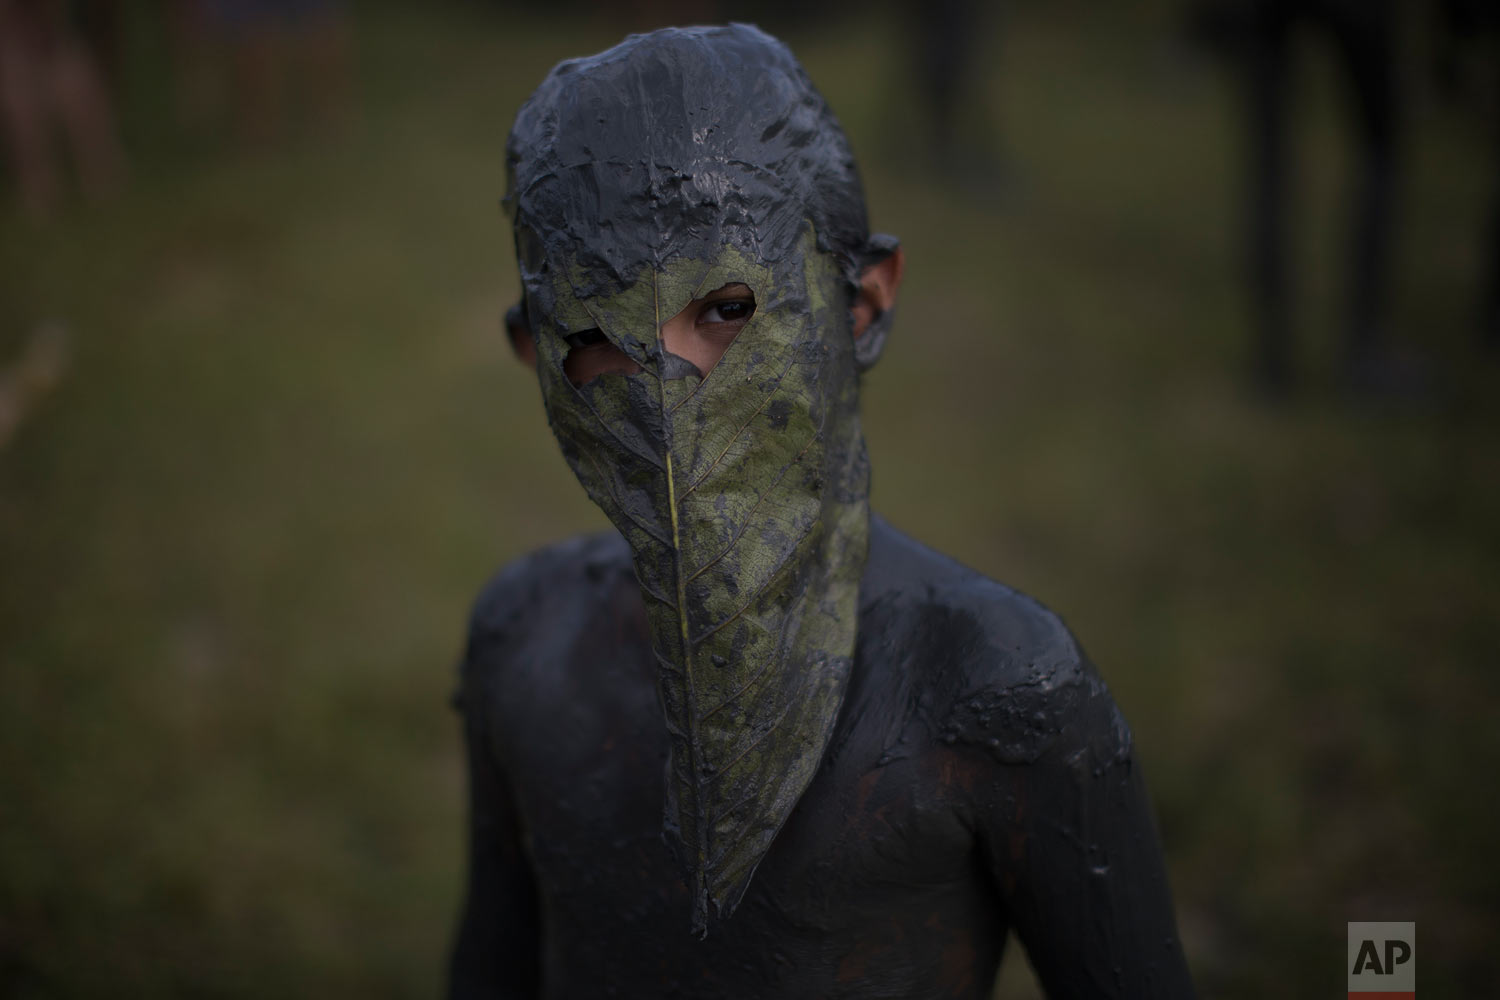 In this Feb. 10, 2018 photo, a mud covered youth poses in his leaf mask during the Mud Block carnival party in Paraty, Brazil. Revelers wrestled, tackled and threw chunks of gunk at each other while dancing to samba and reggaeton at the beach party where clothes were optional but the mud was not. (AP Photo/Leo Correa)